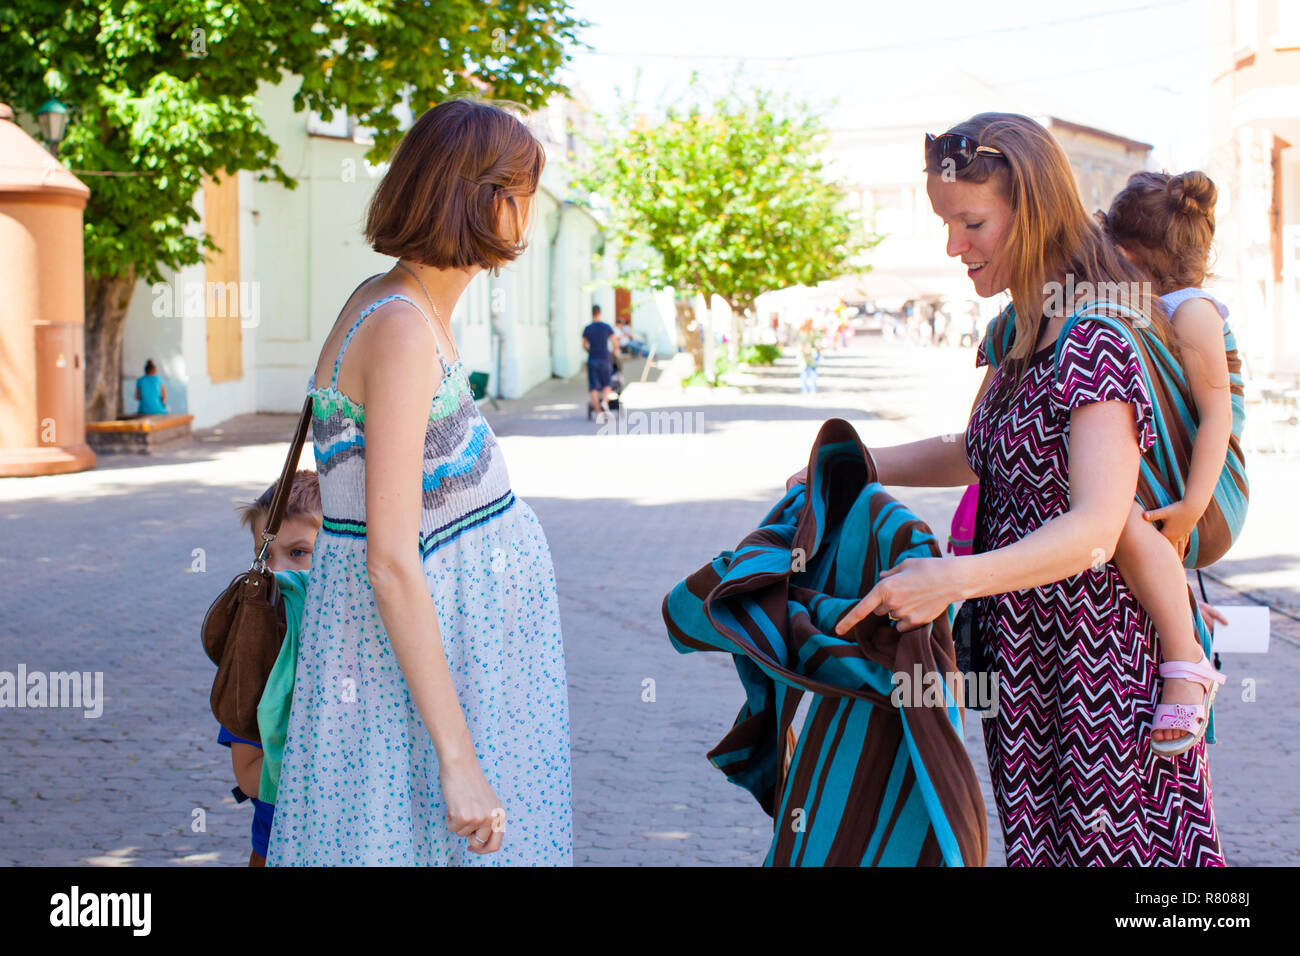 Pregnant Lady Learning How To Use Baby Wrap Stock Photo 228658546